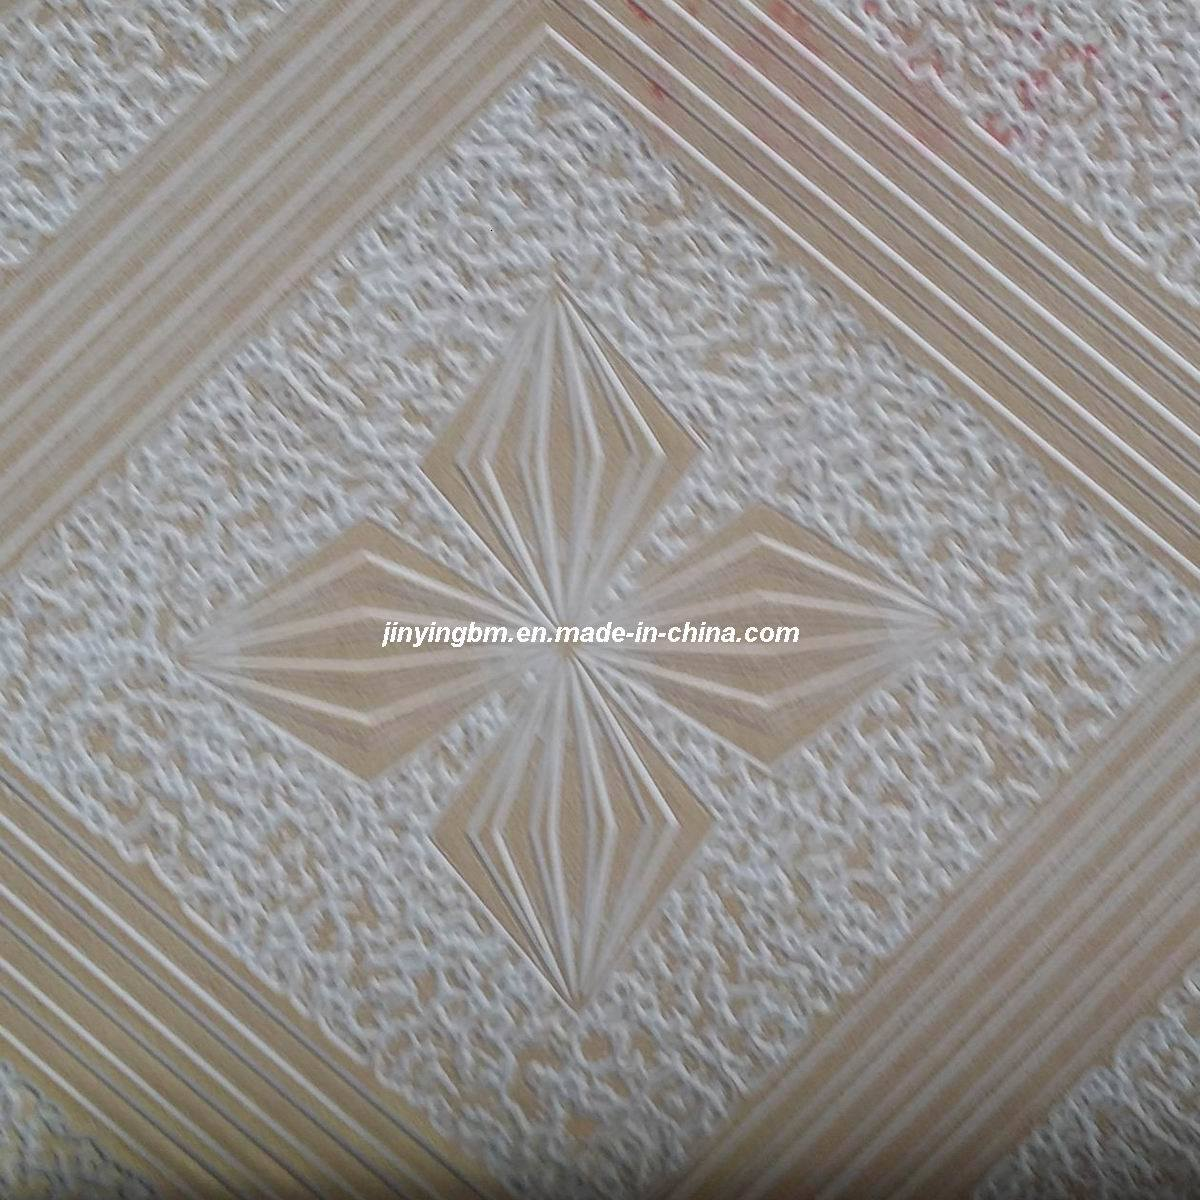 China manufacturer of pvc vinyl coated plasterboard ceiling china manufacturer of pvc vinyl coated plasterboard ceiling china gypsum ceiling gypsum ceiling board dailygadgetfo Image collections